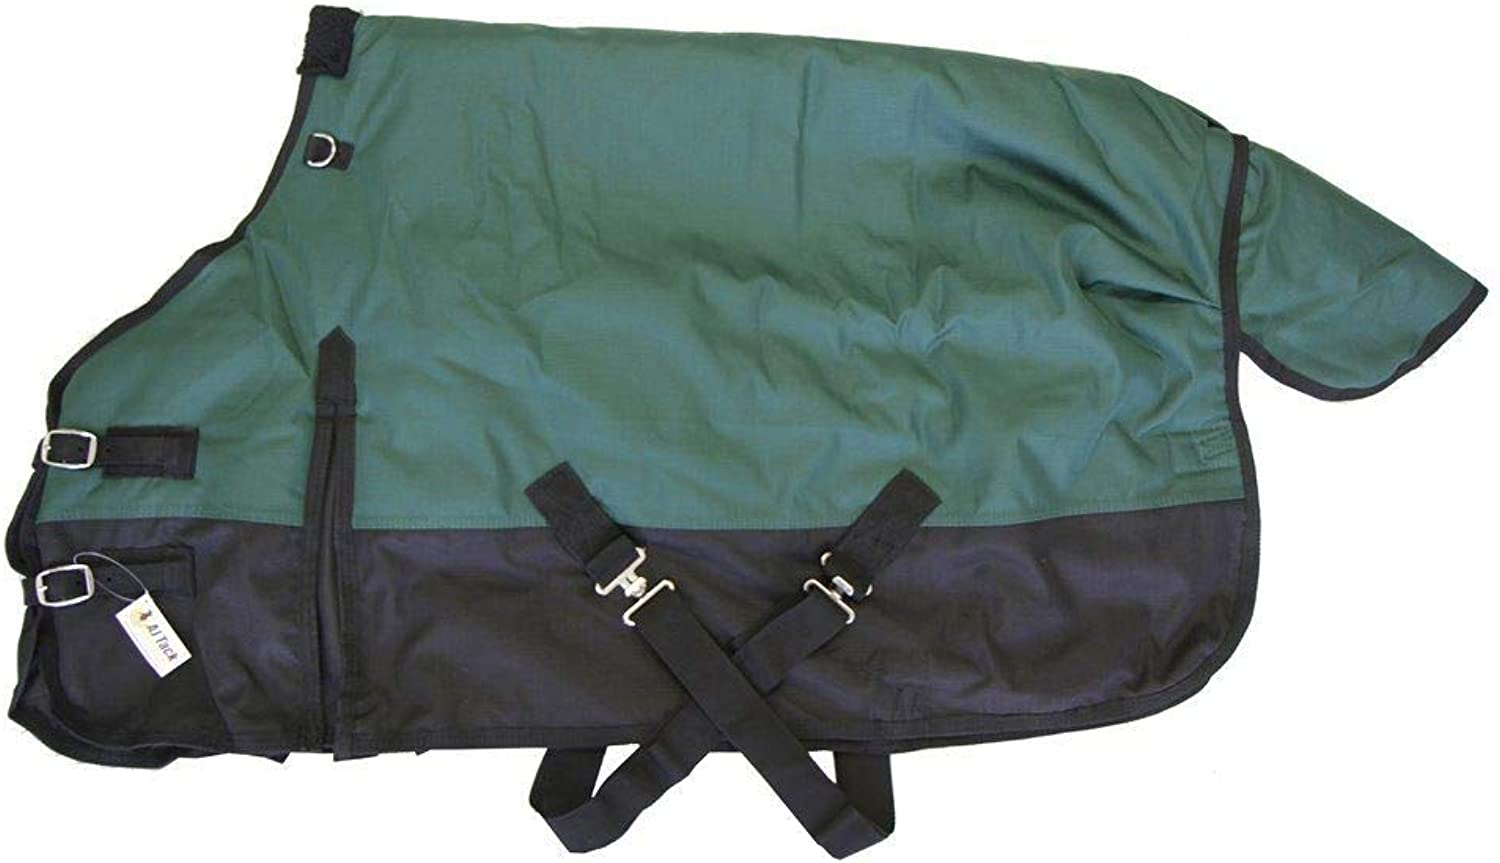 Medium Weight Pony Turnout Blanket 1200D Rip Stop Water Proof Green, 50